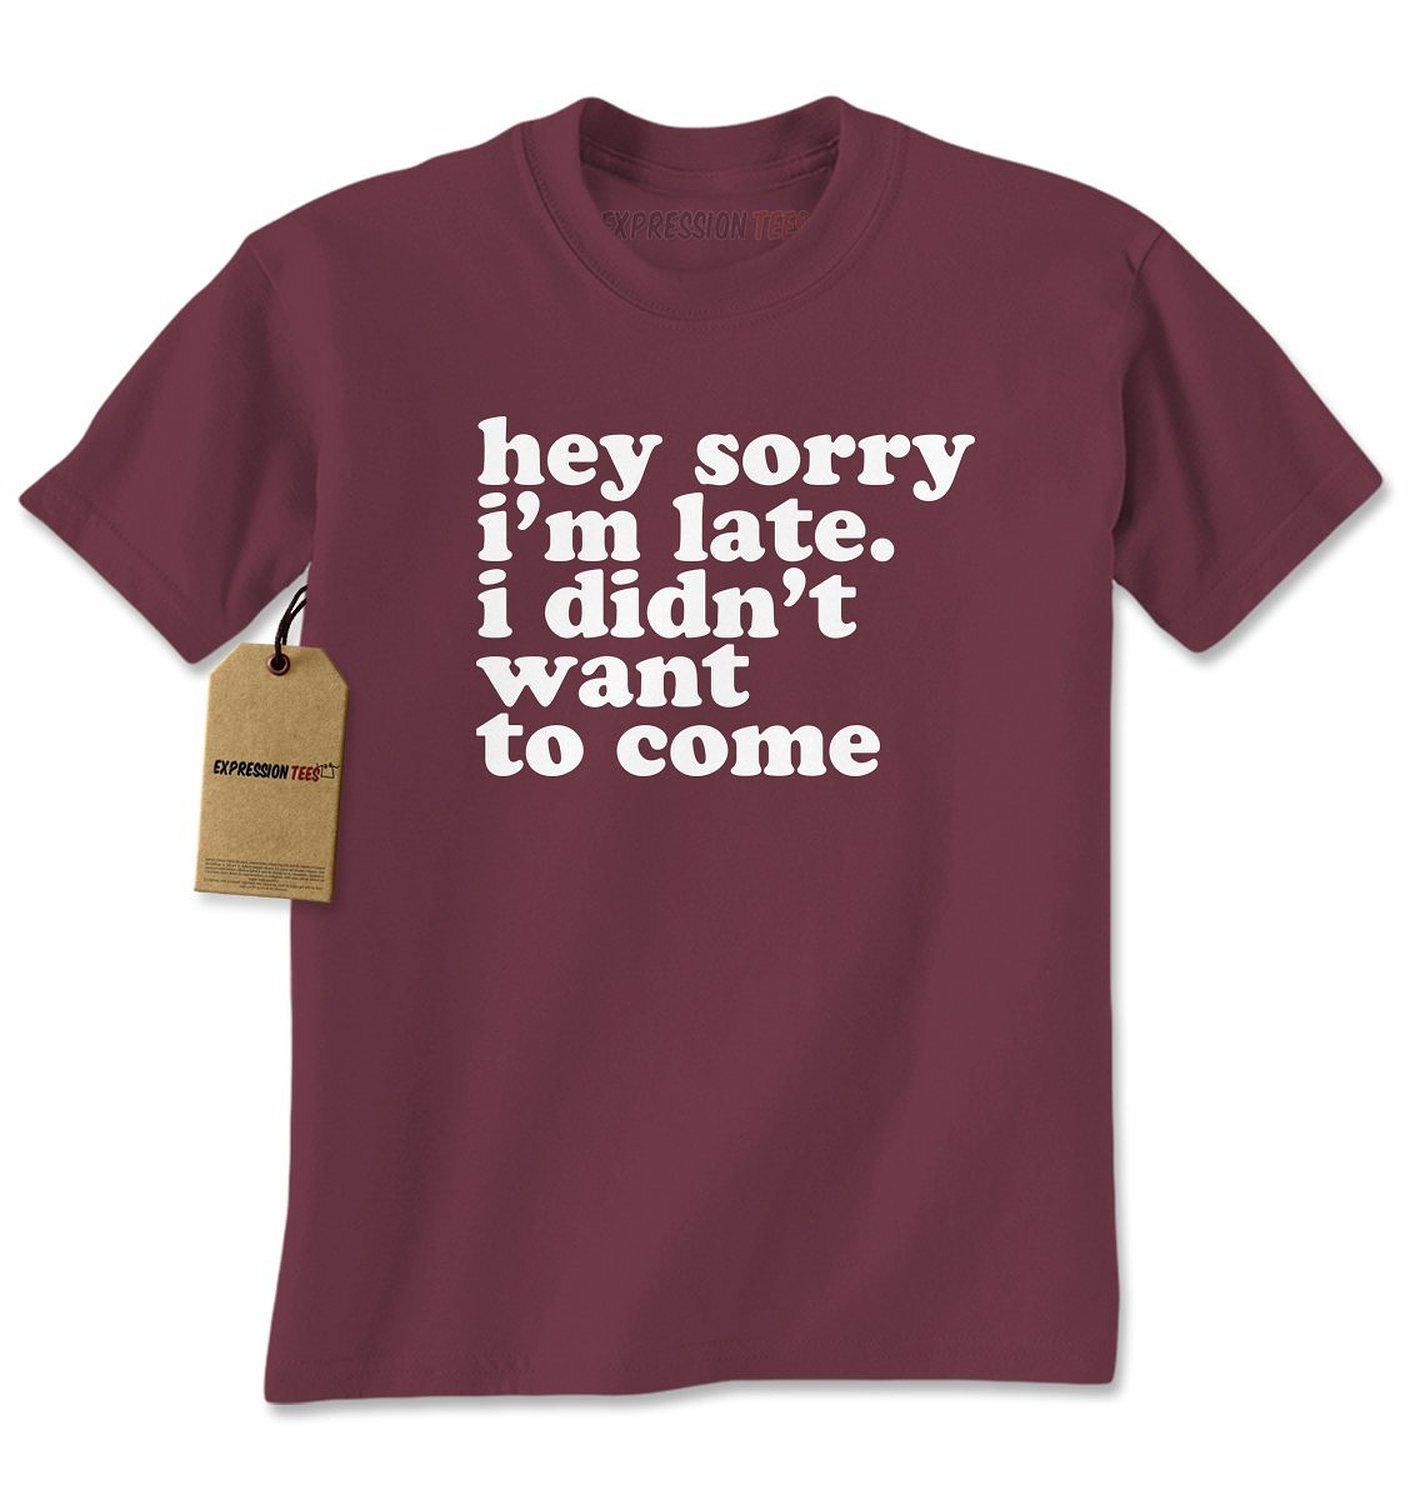 Expression Tees Hey Sorry I'm Late, I Didn't Want To Come Mens